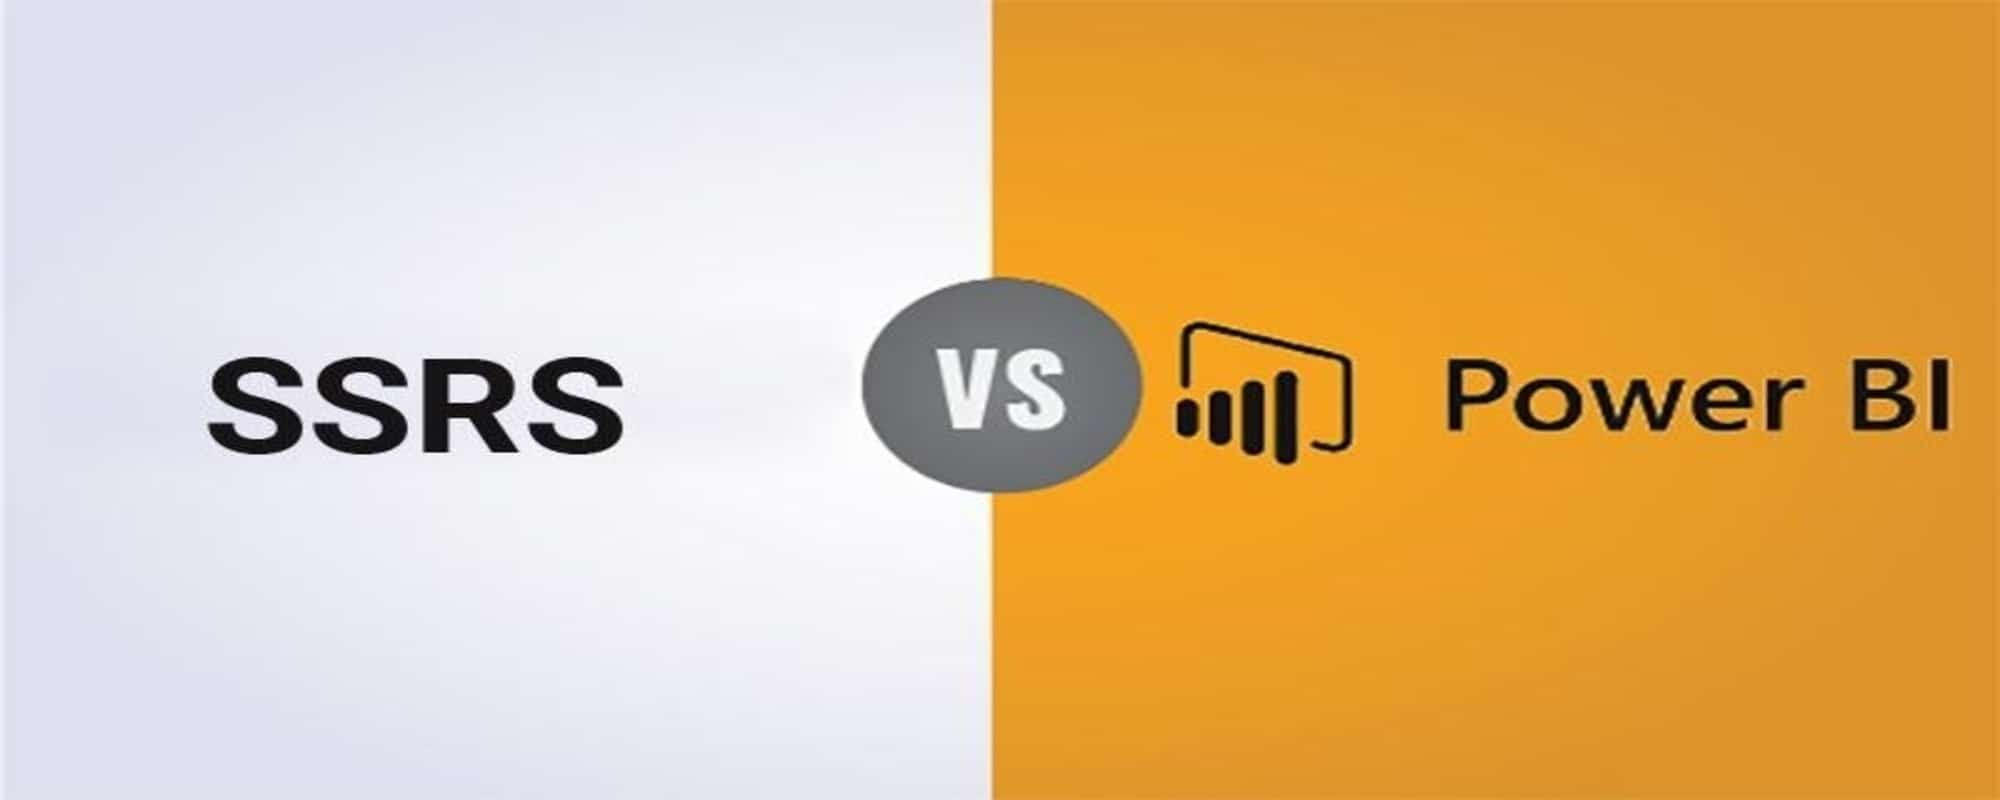 Similarities And Differences Between Power BI And SSRS